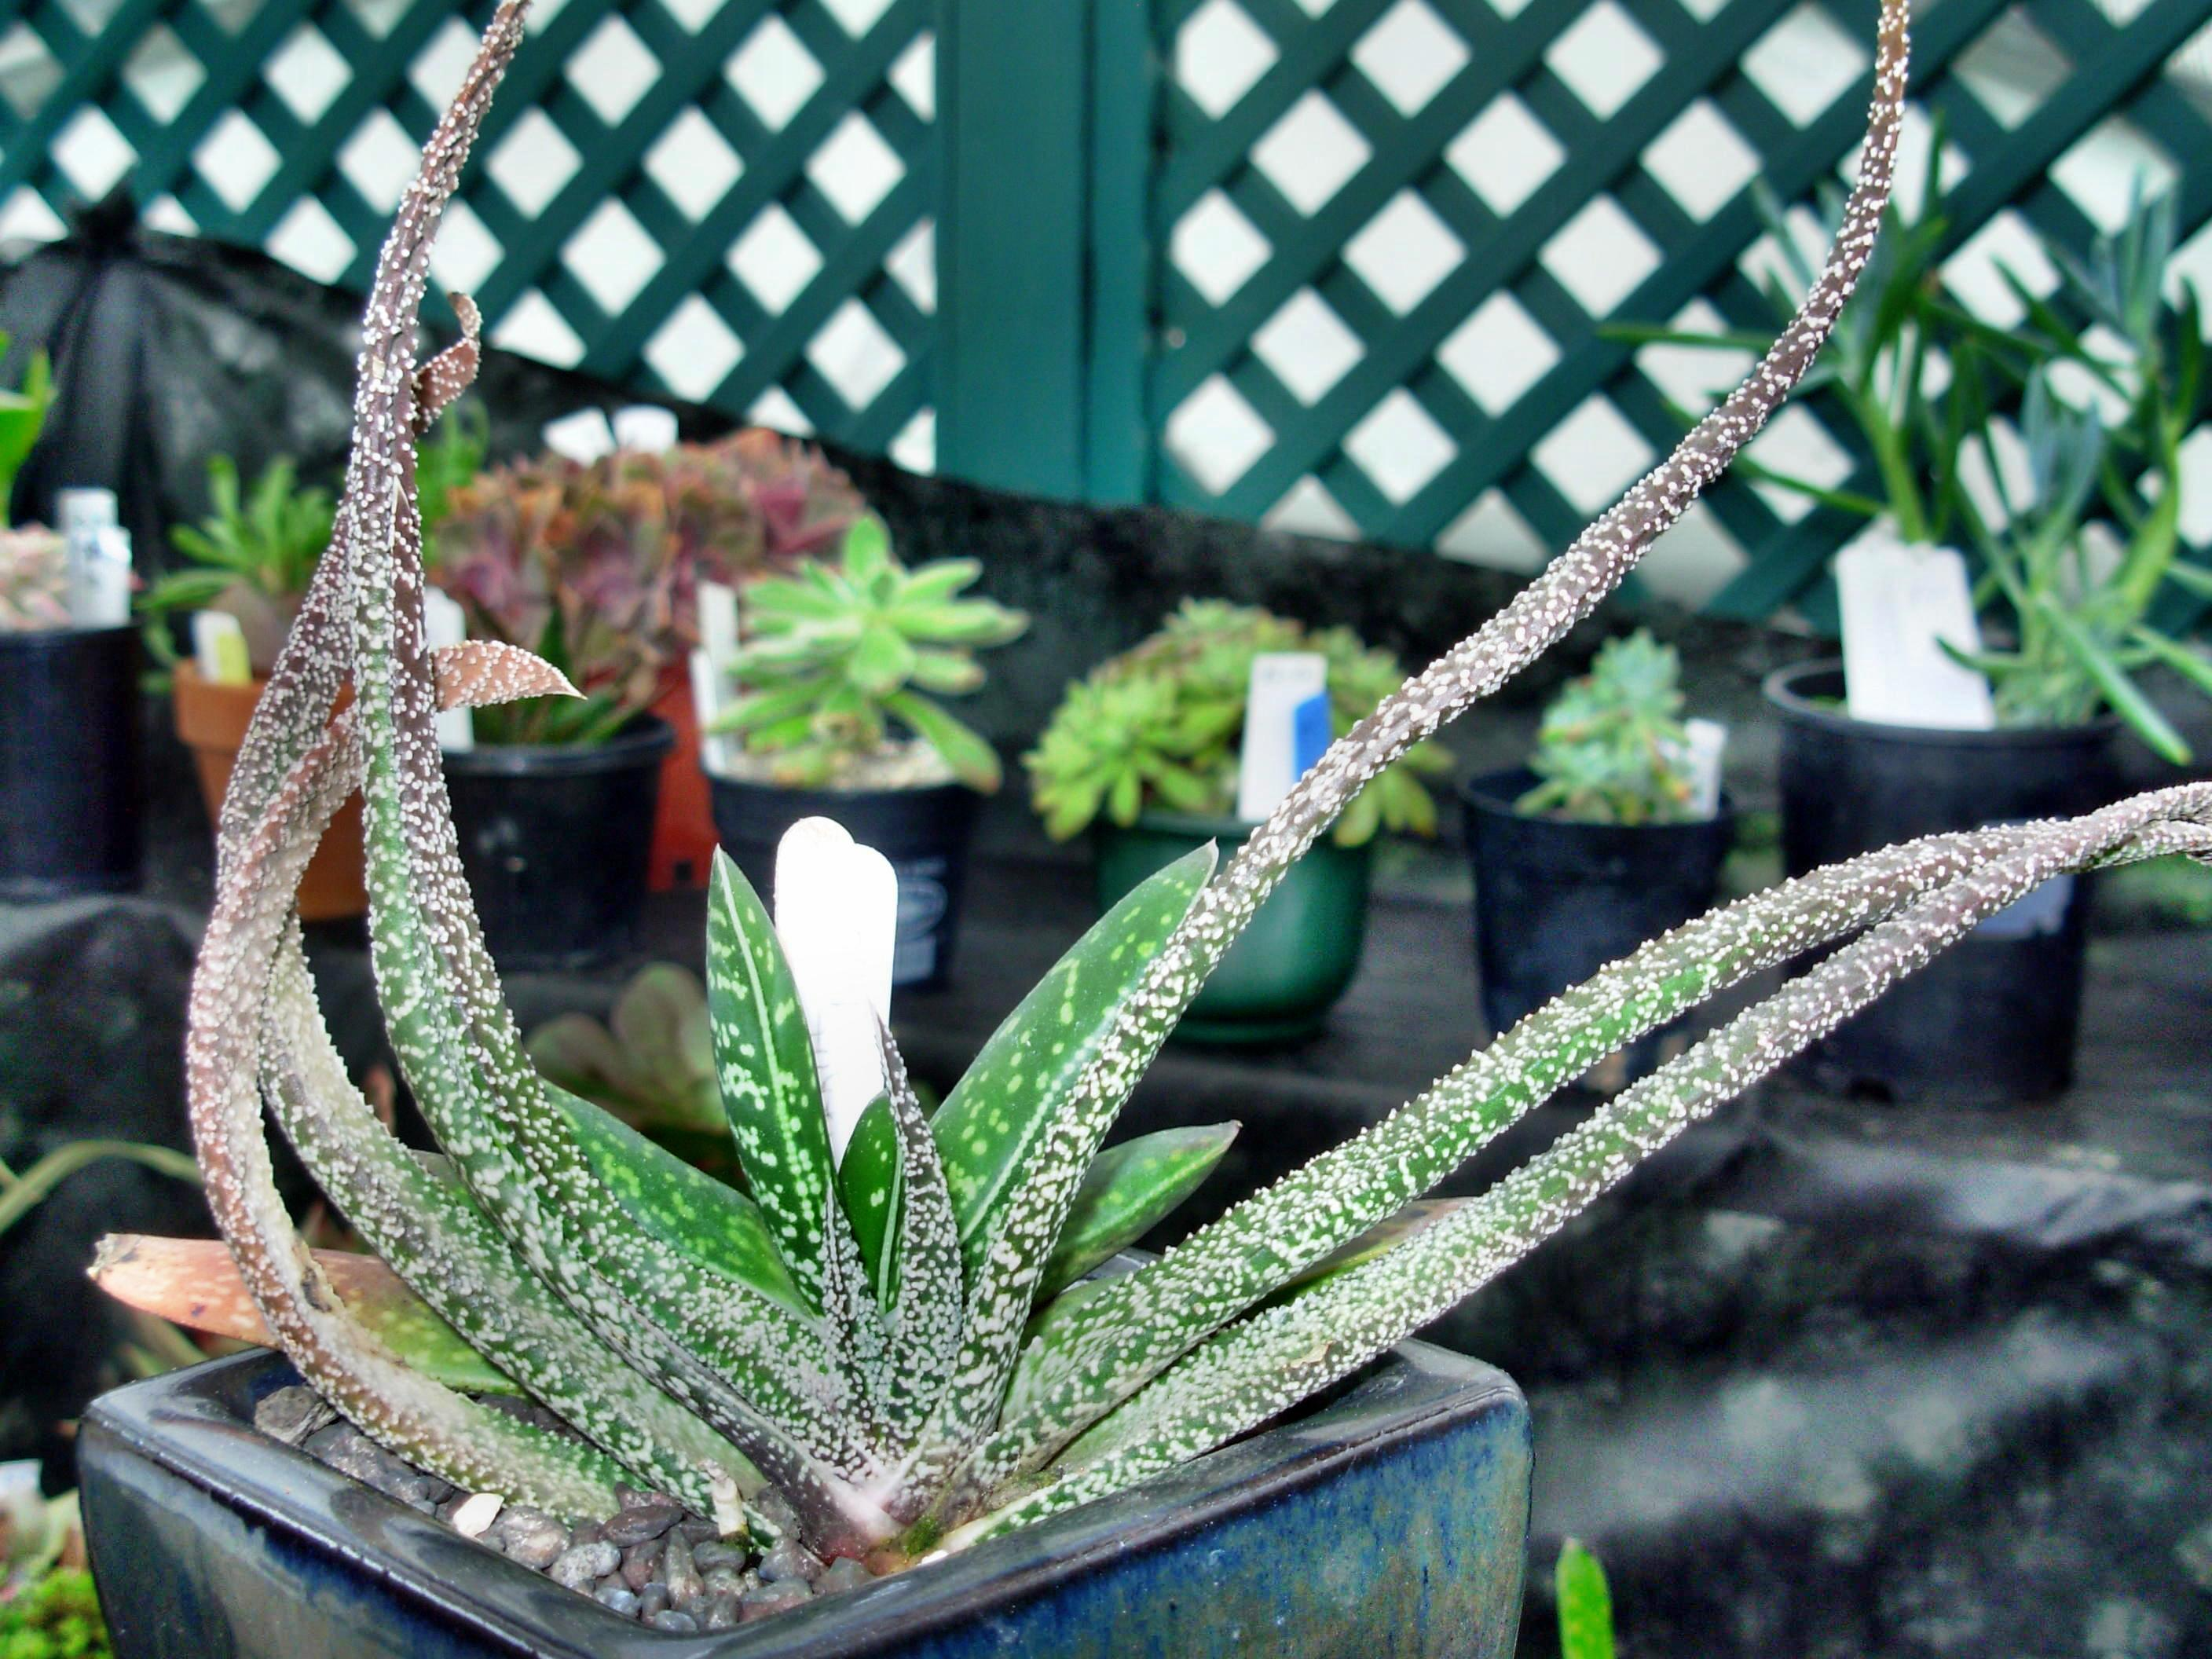 This should be Gasteria-1.jpeg.  Is it missing?